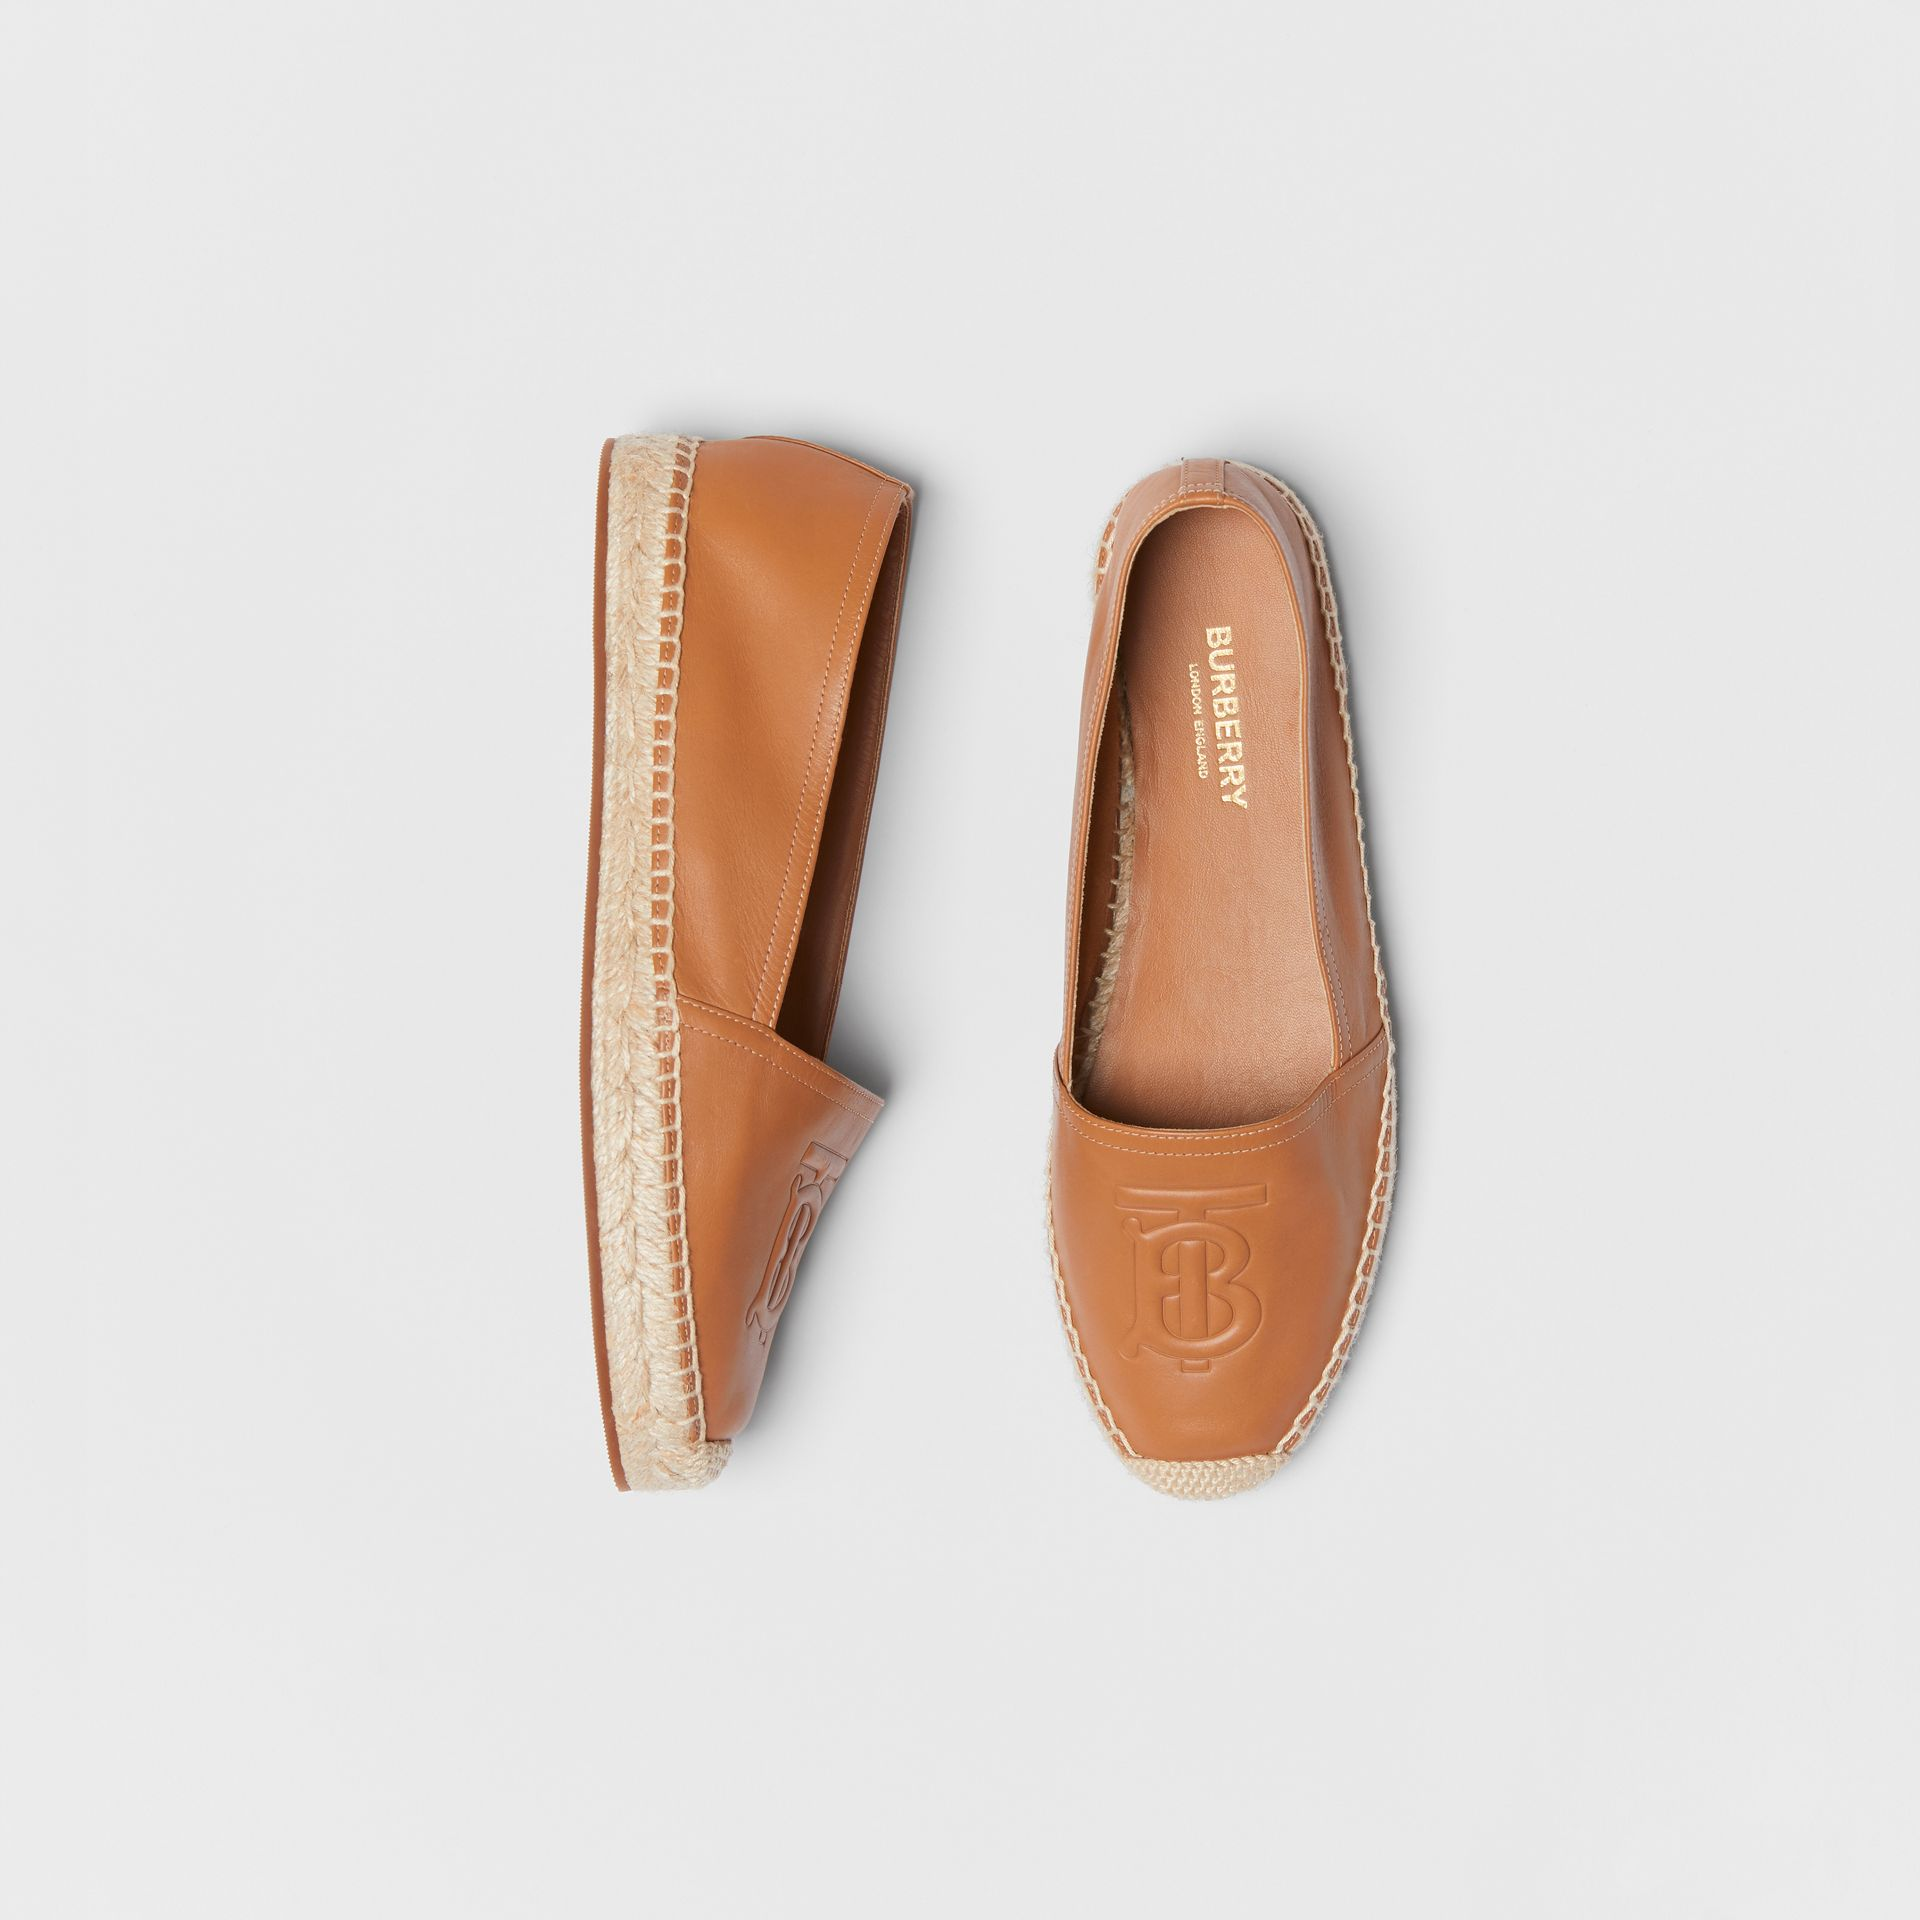 Monogram Motif Lambskin Espadrilles in Camel - Women | Burberry United Kingdom - gallery image 0